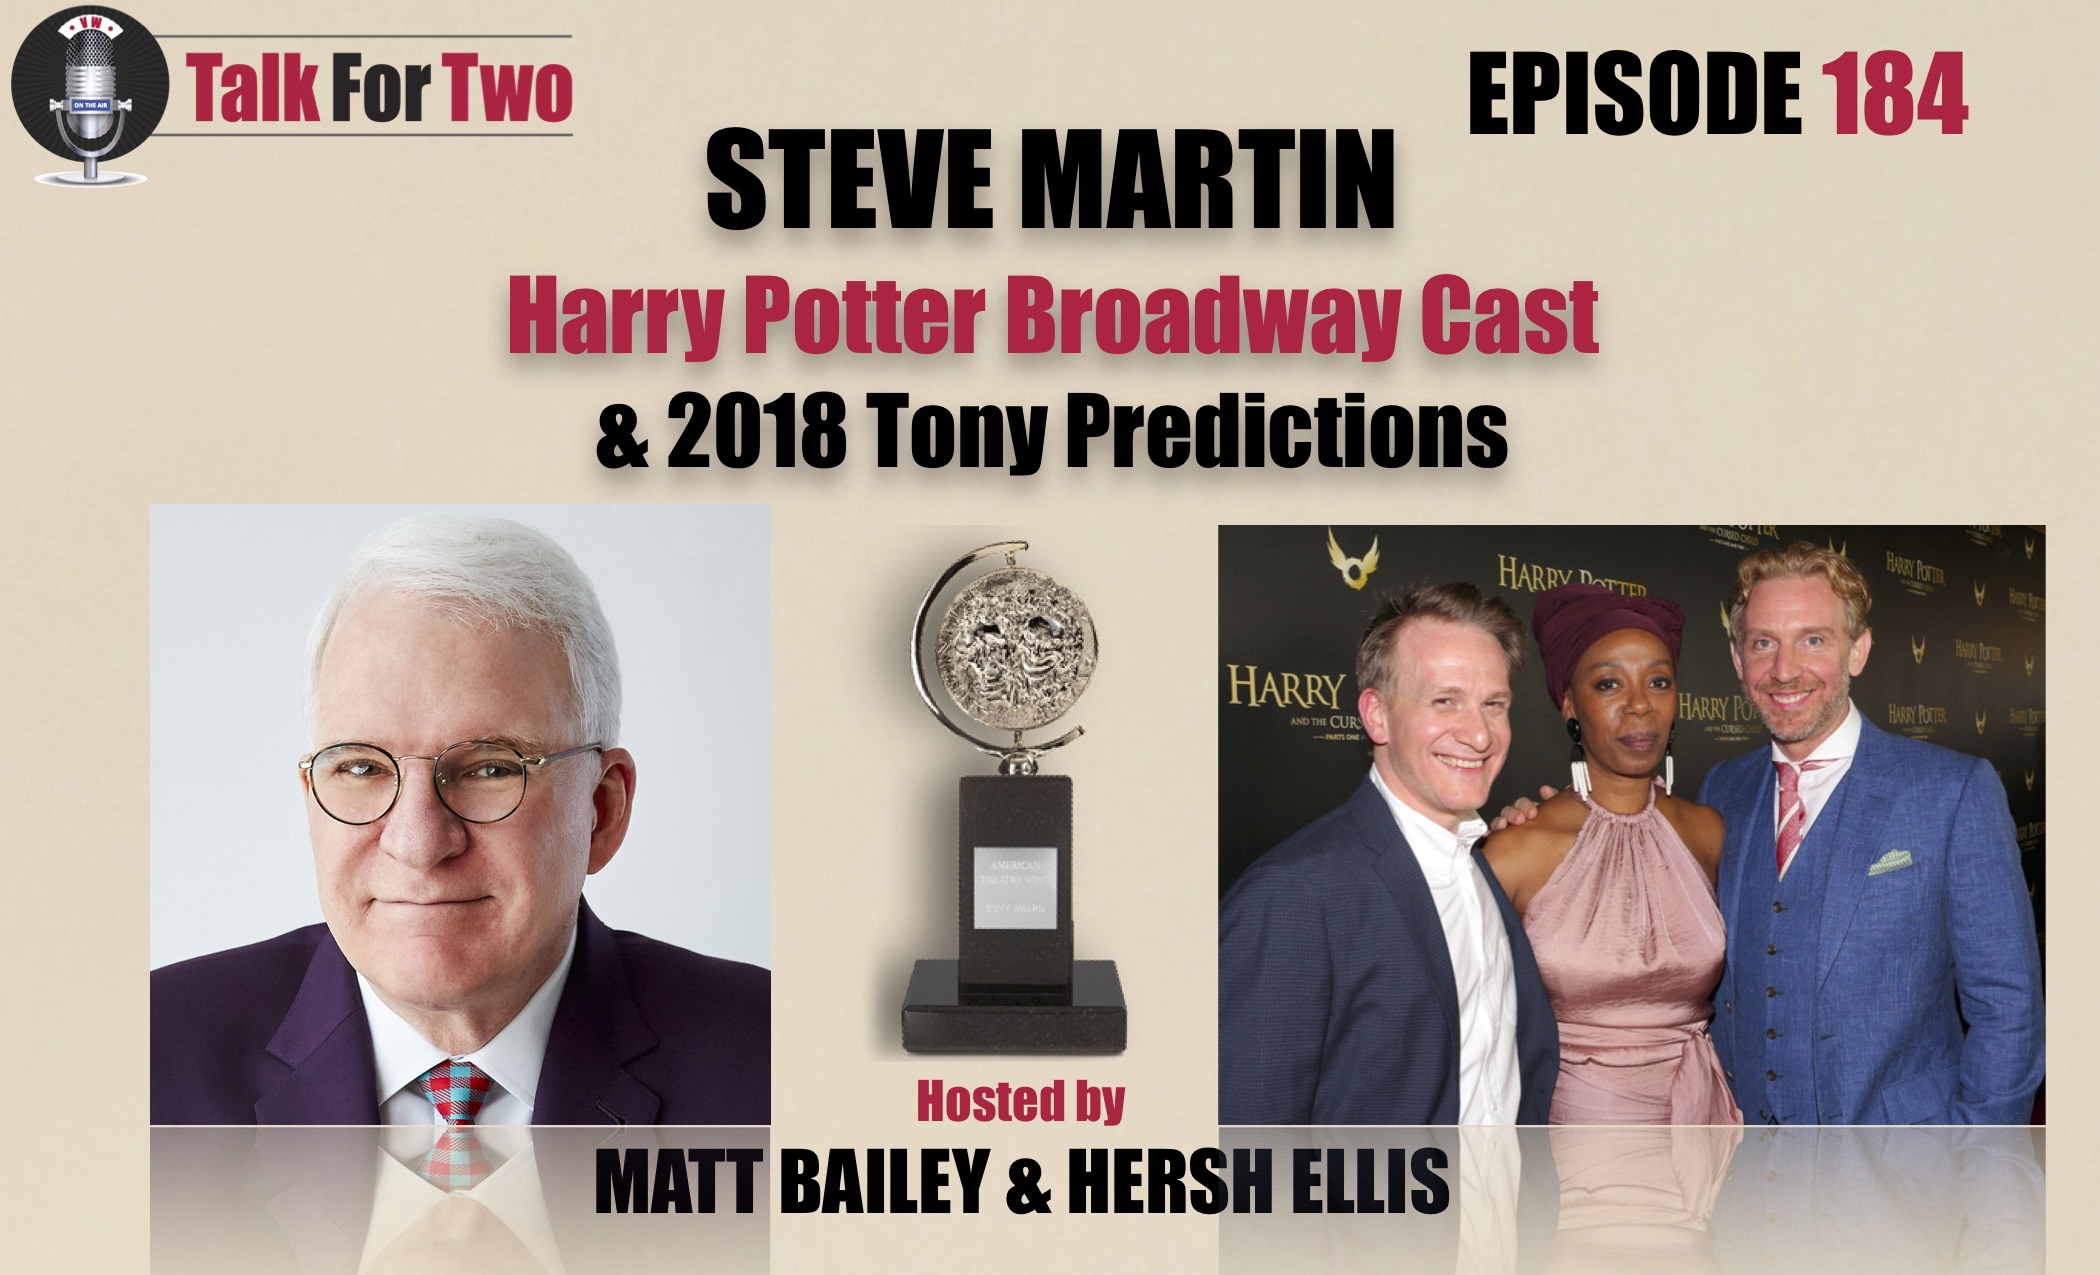 Steve Martin, Harry Potter and the Cursed Child